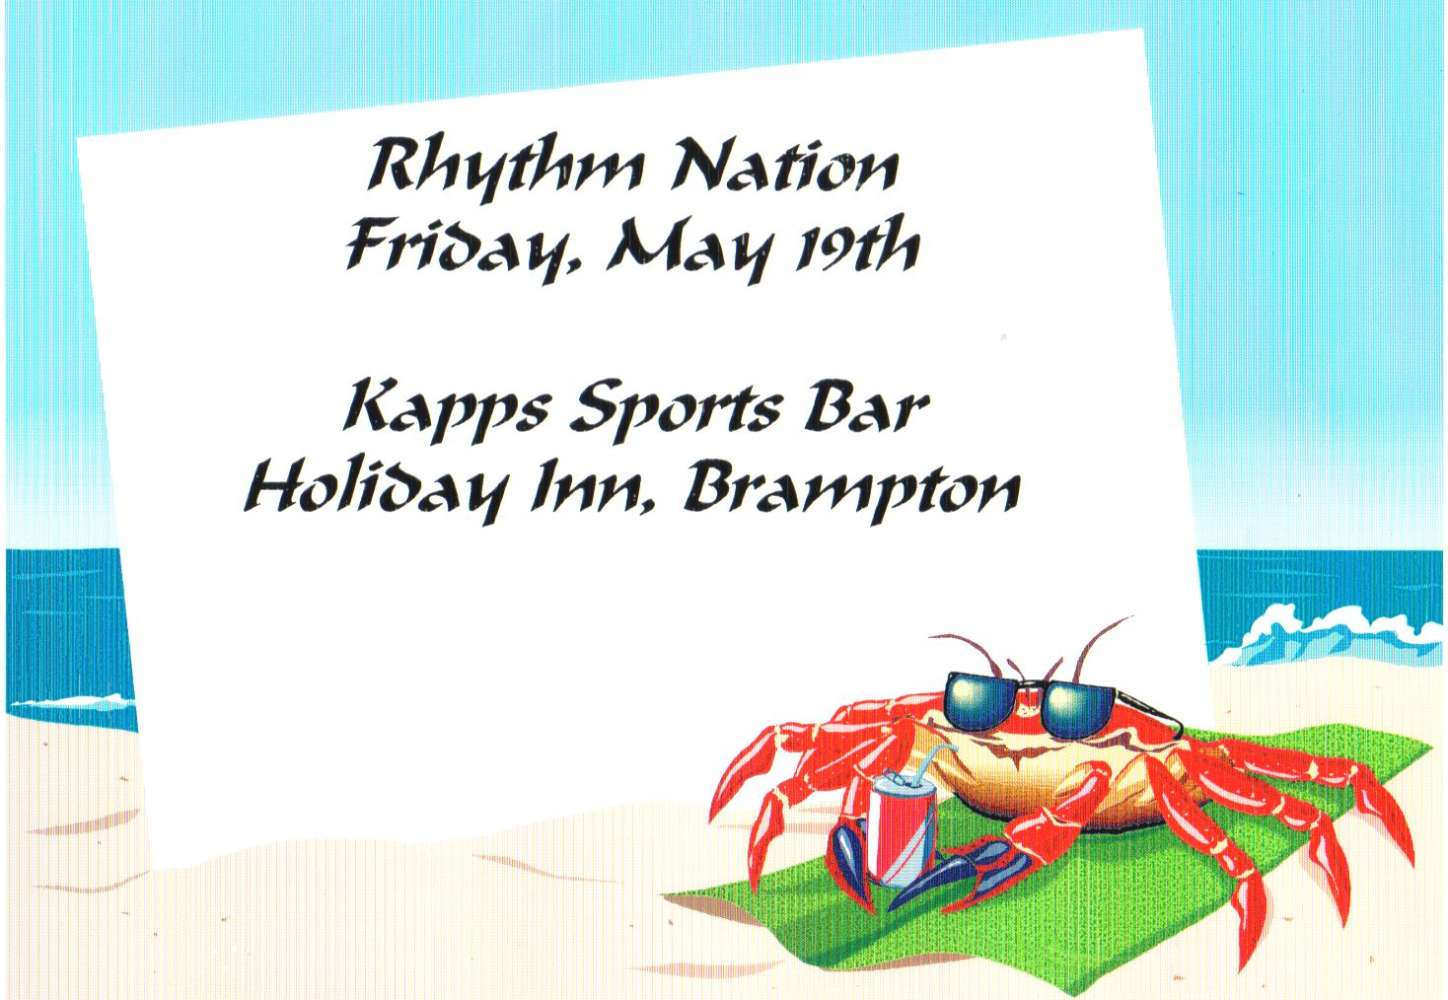 Rhythm Nation - Holiday Inn Kapps Sports Bar